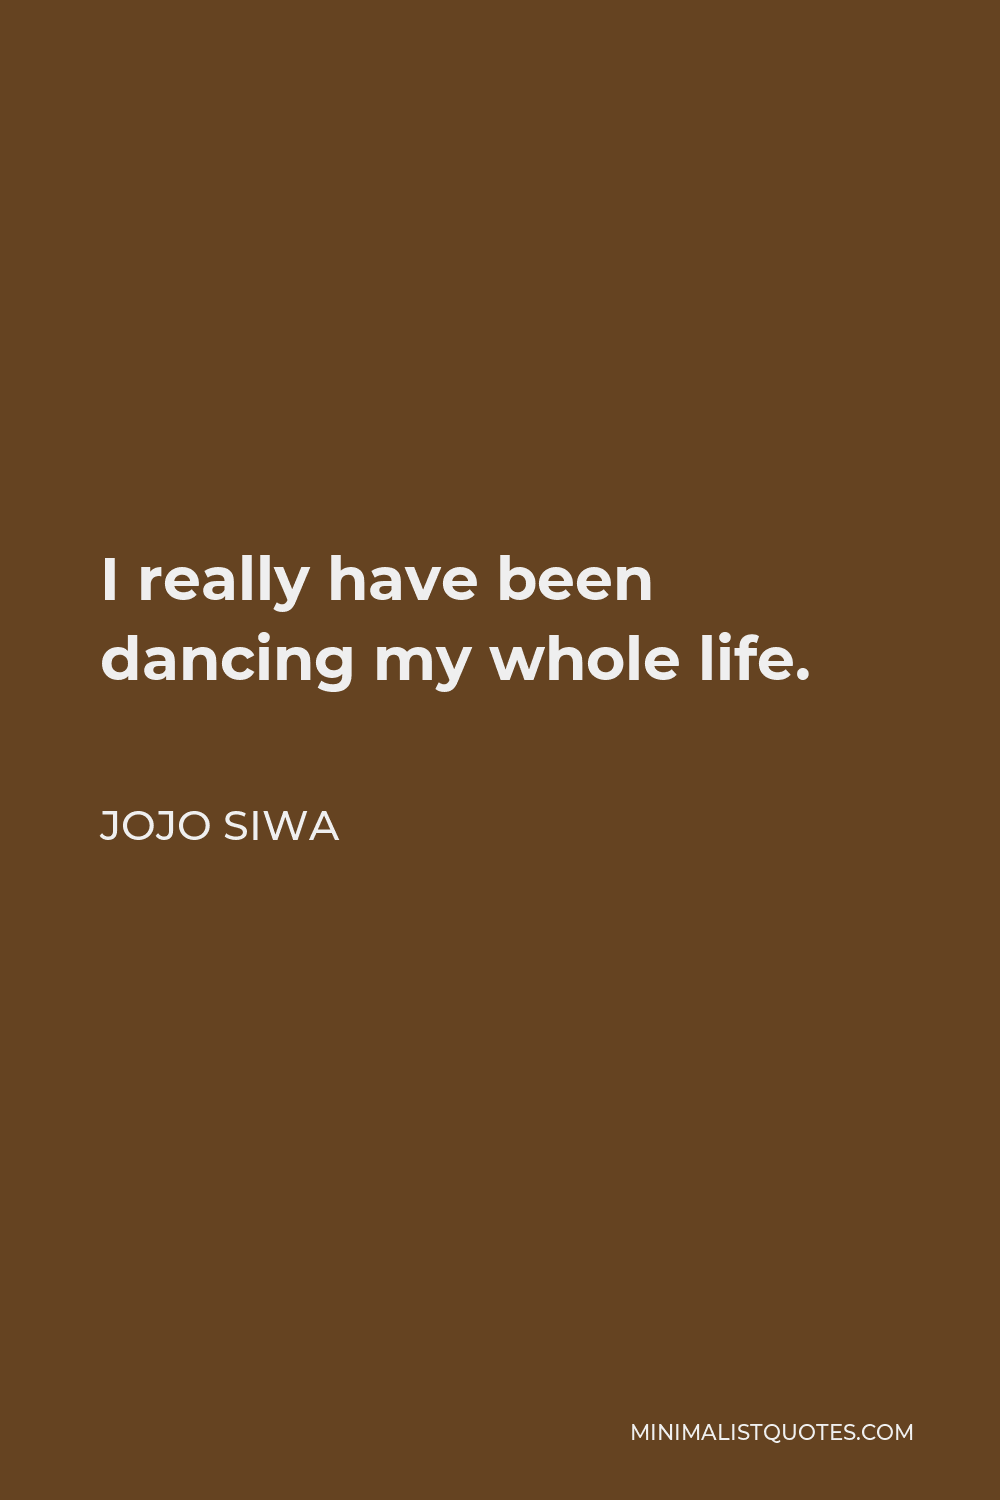 JoJo Siwa Quote - I really have been dancing my whole life.